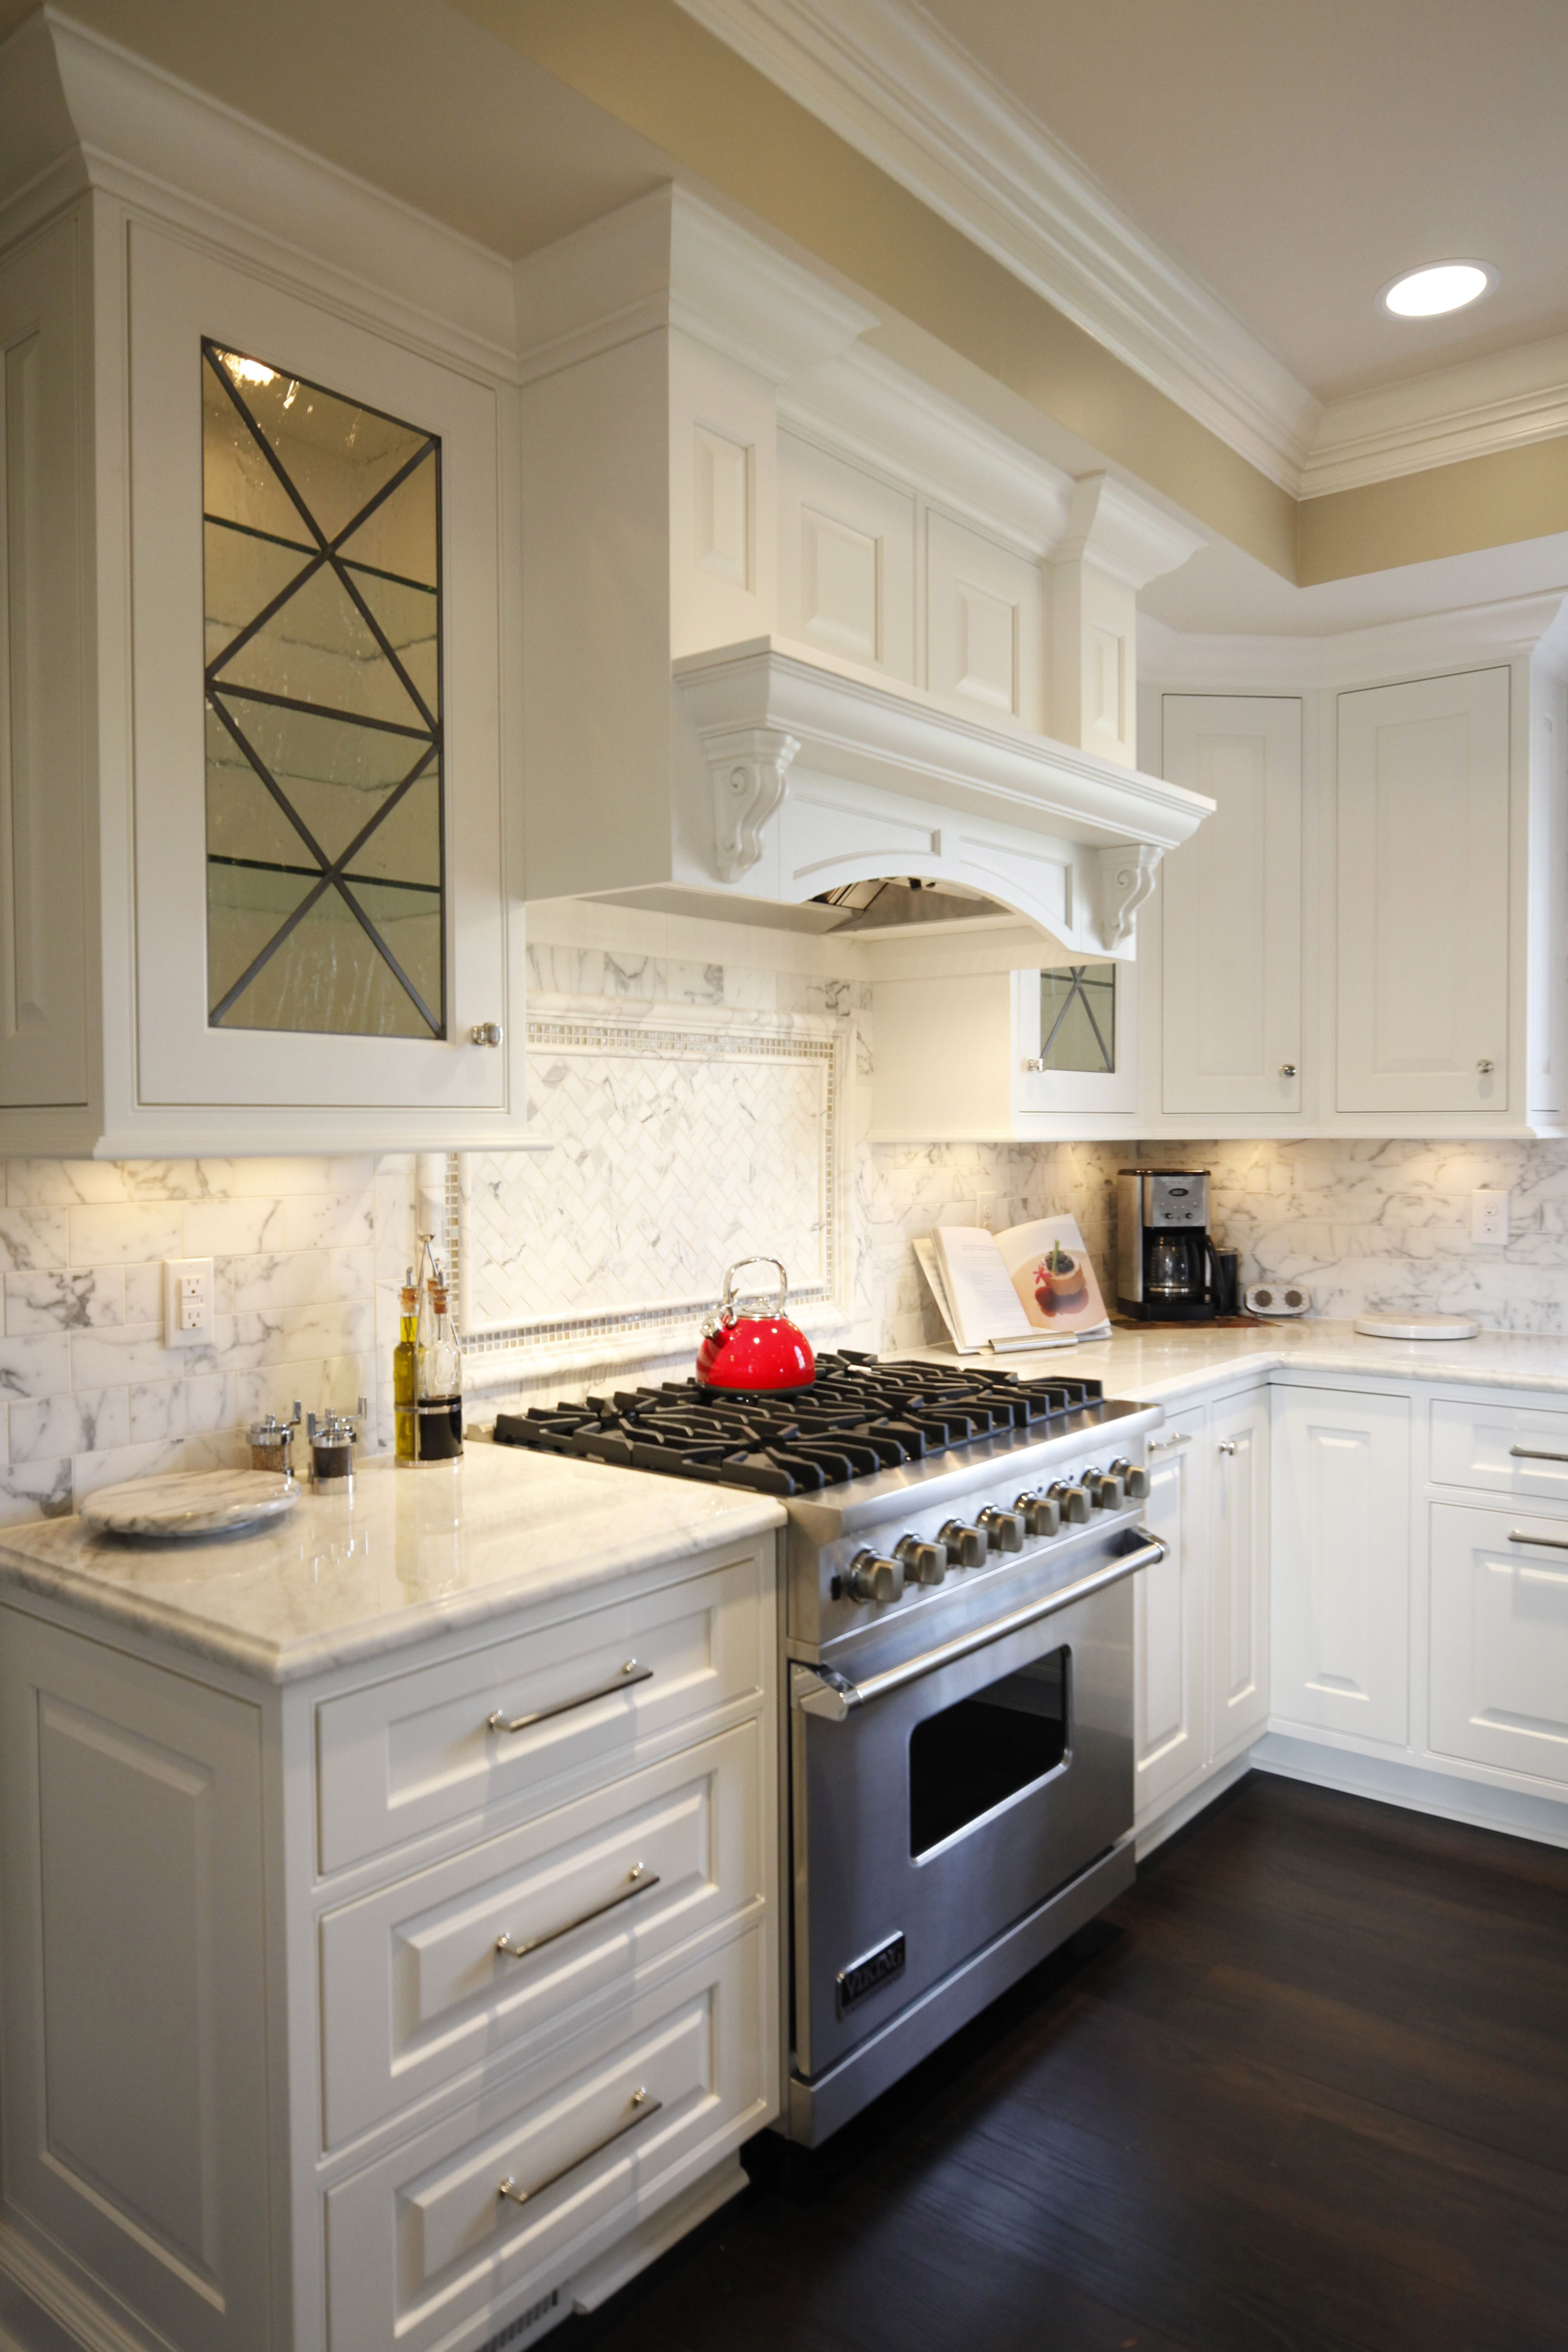 Stainless Steel Appliances, White Cabinets, Grabill Cabinets, Dark Hardwood  Flooring